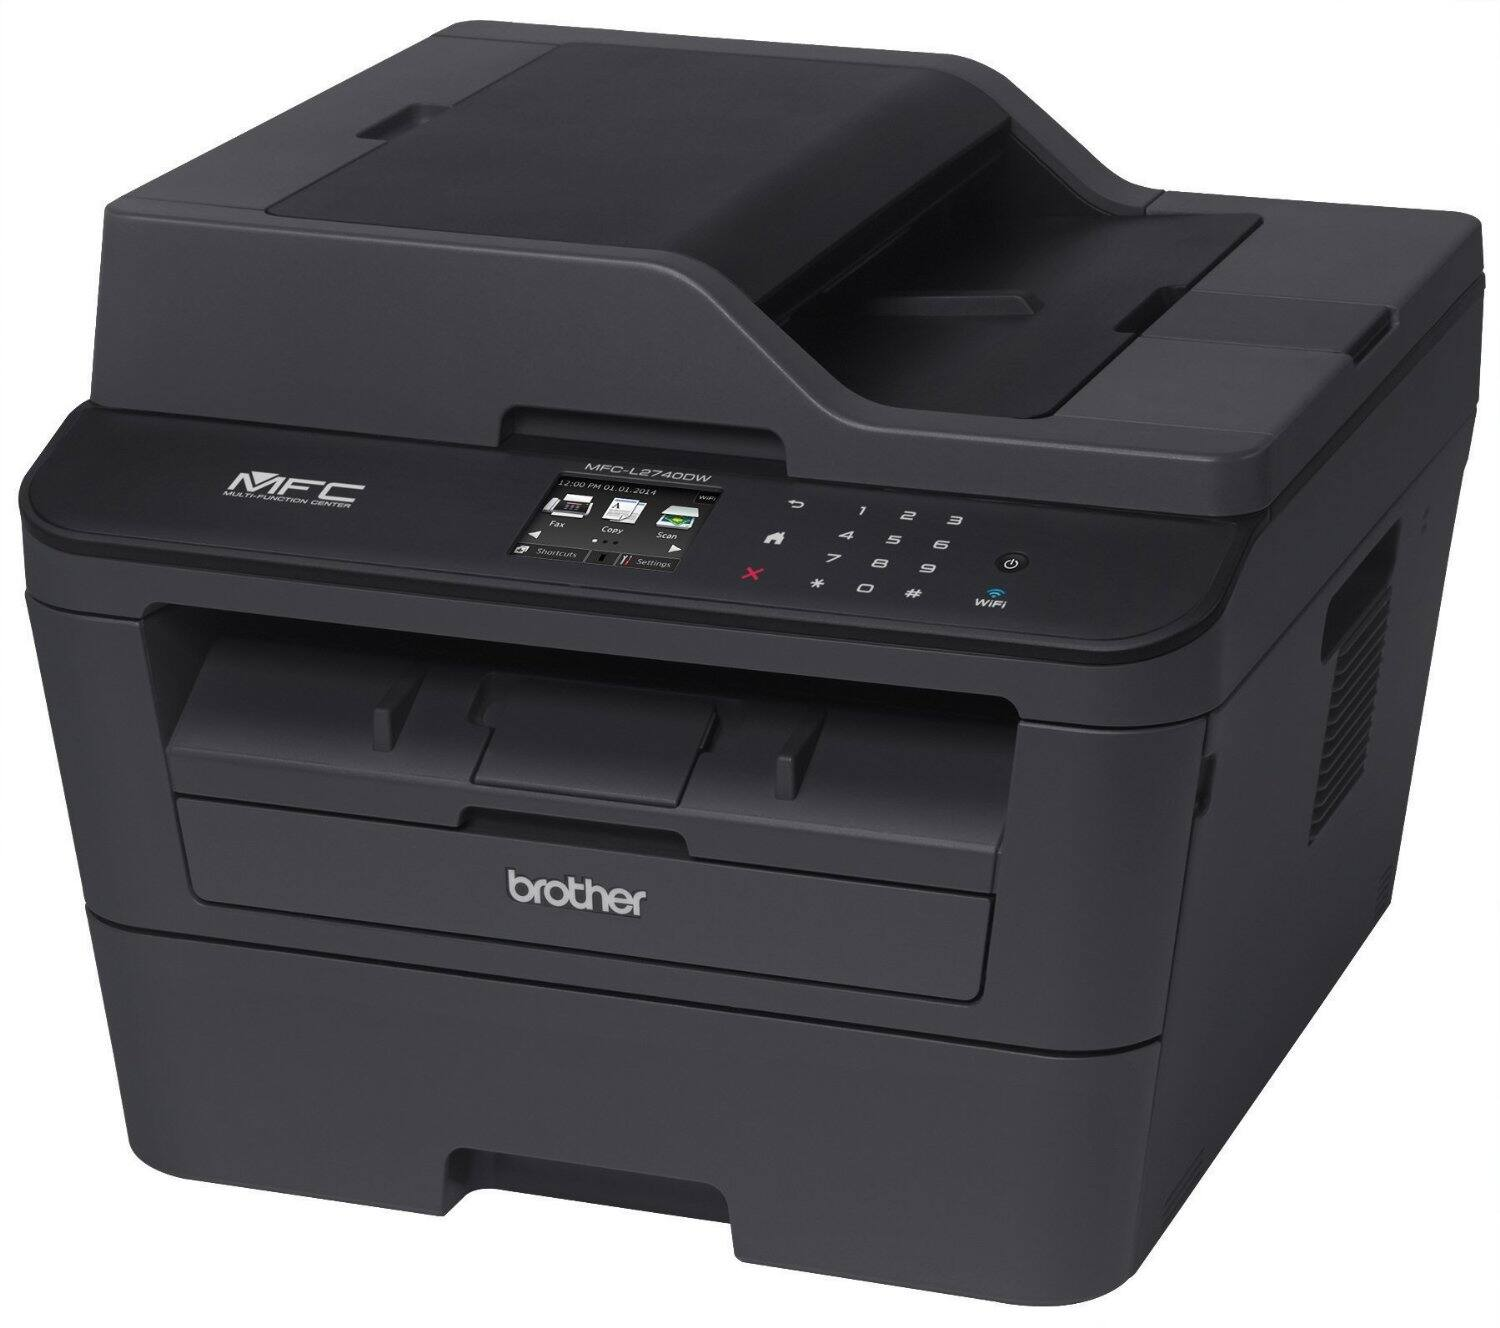 Brother MFCL2740DW Wireless Monochrome All-In-One Laser Printer, Scanner, Copier, Fax $149.99 + Free Shipping